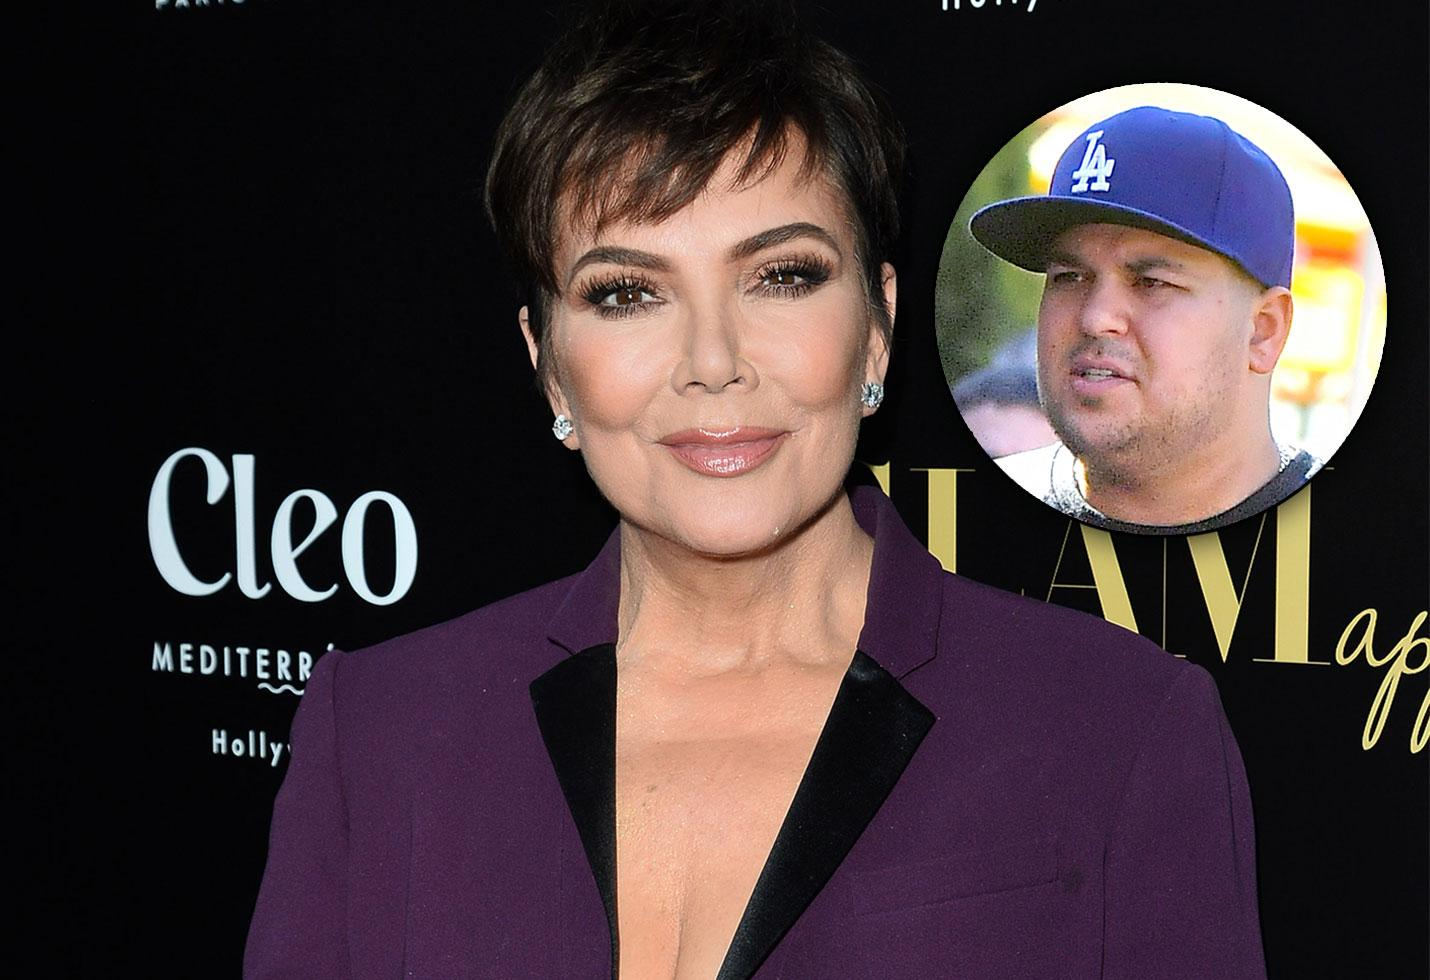 KUWK: Kris Jenner Hopes Son Rob Might Join The Rest Of The Family For This Year's Holiday Card Shoot After His Weightloss